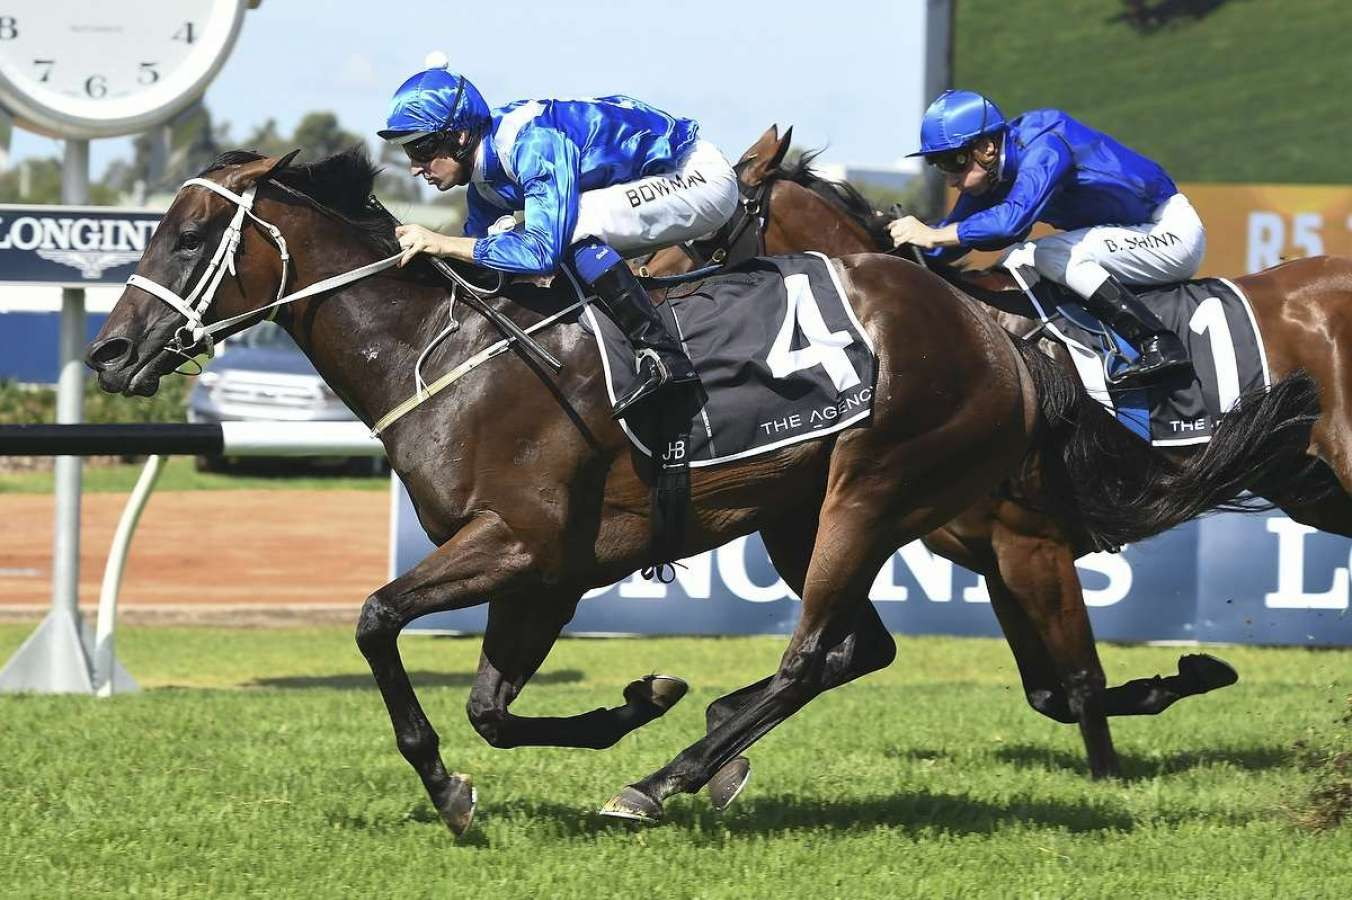 Winx wins the George Ryder, claims record